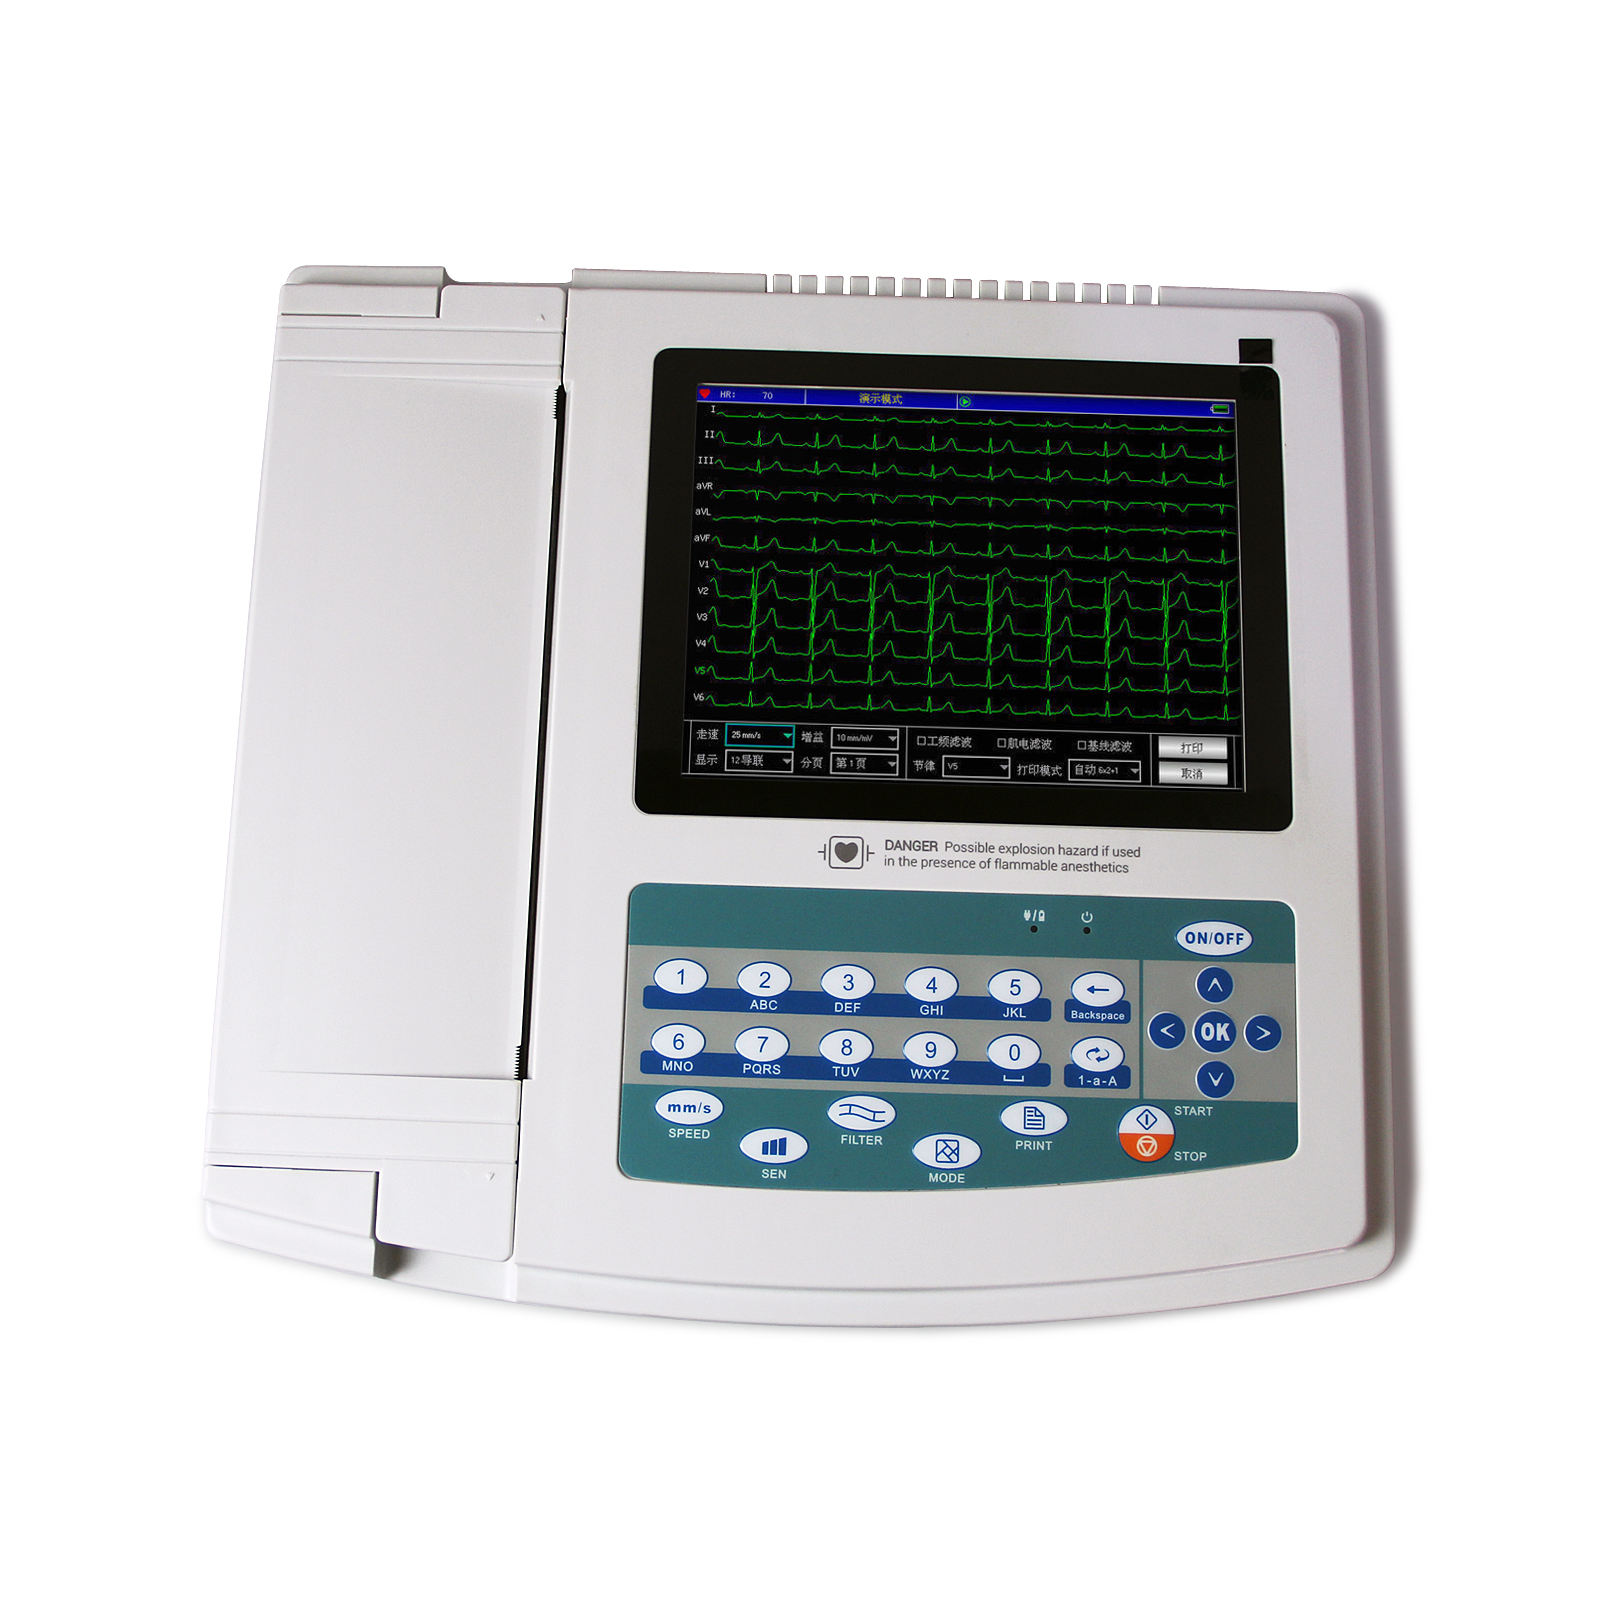 Maart Expo ECG1200G Digitale 12 Kanaals Ecg/Ekg Touch Screen Ecg Machine 12 Leads